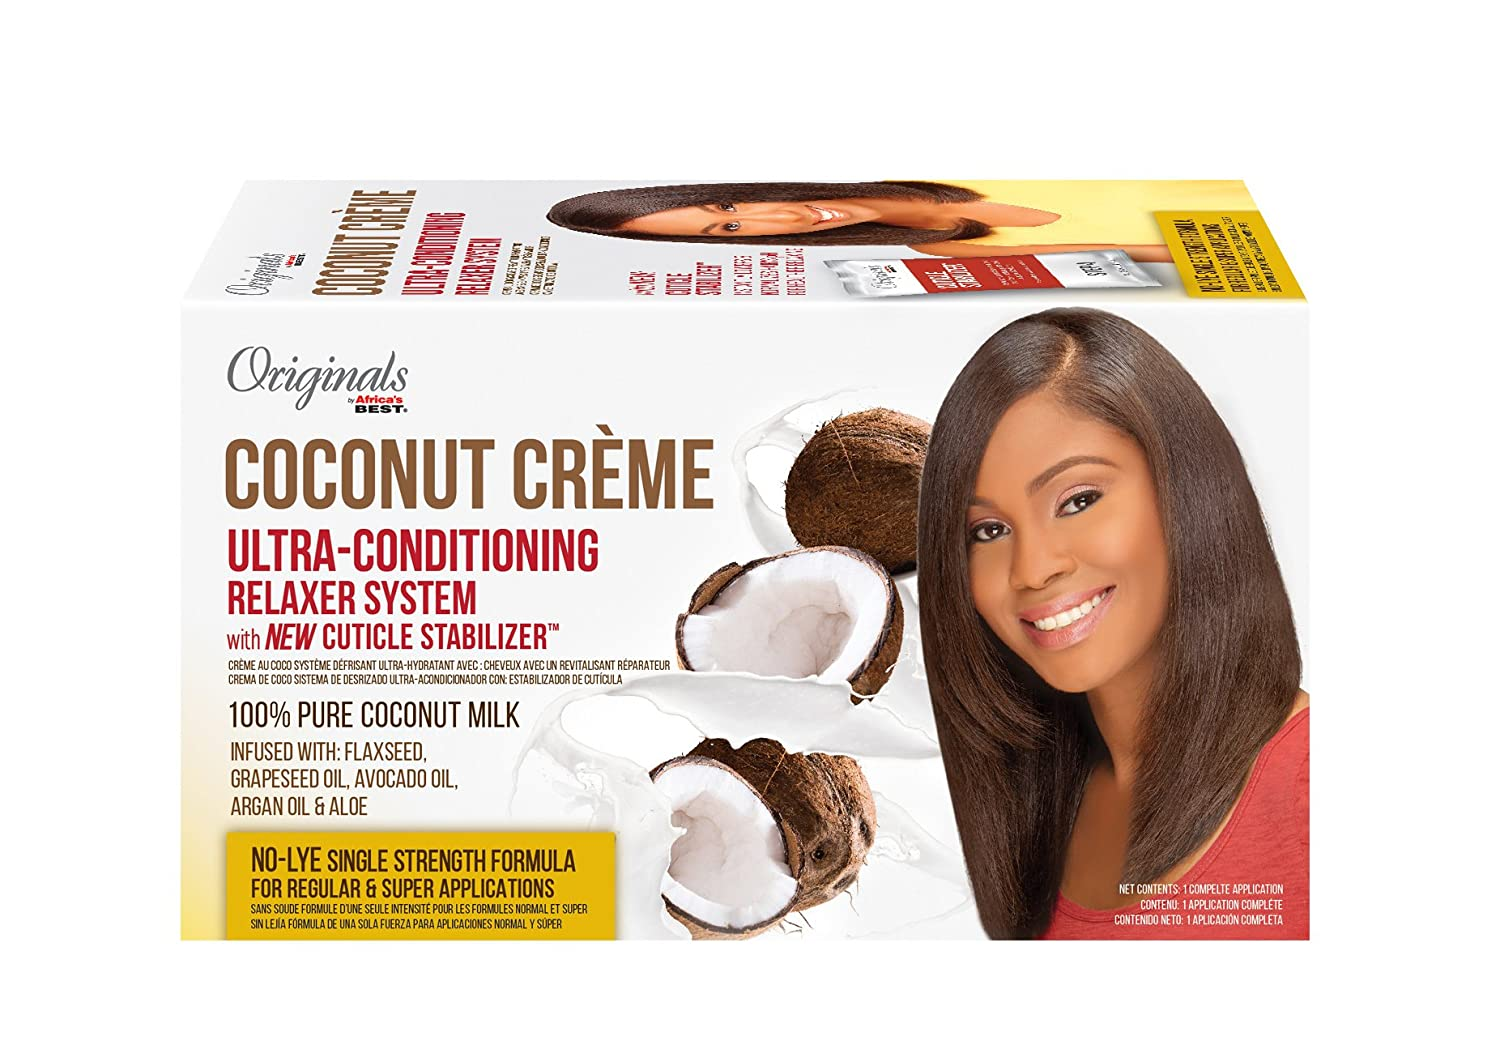 Originals By Africa's Best Coconut Creme Ultra-Conditioning Relaxer System with Cuticle Stabilizer 1 Kit House of Cheatham Inc 1-295-01-0400